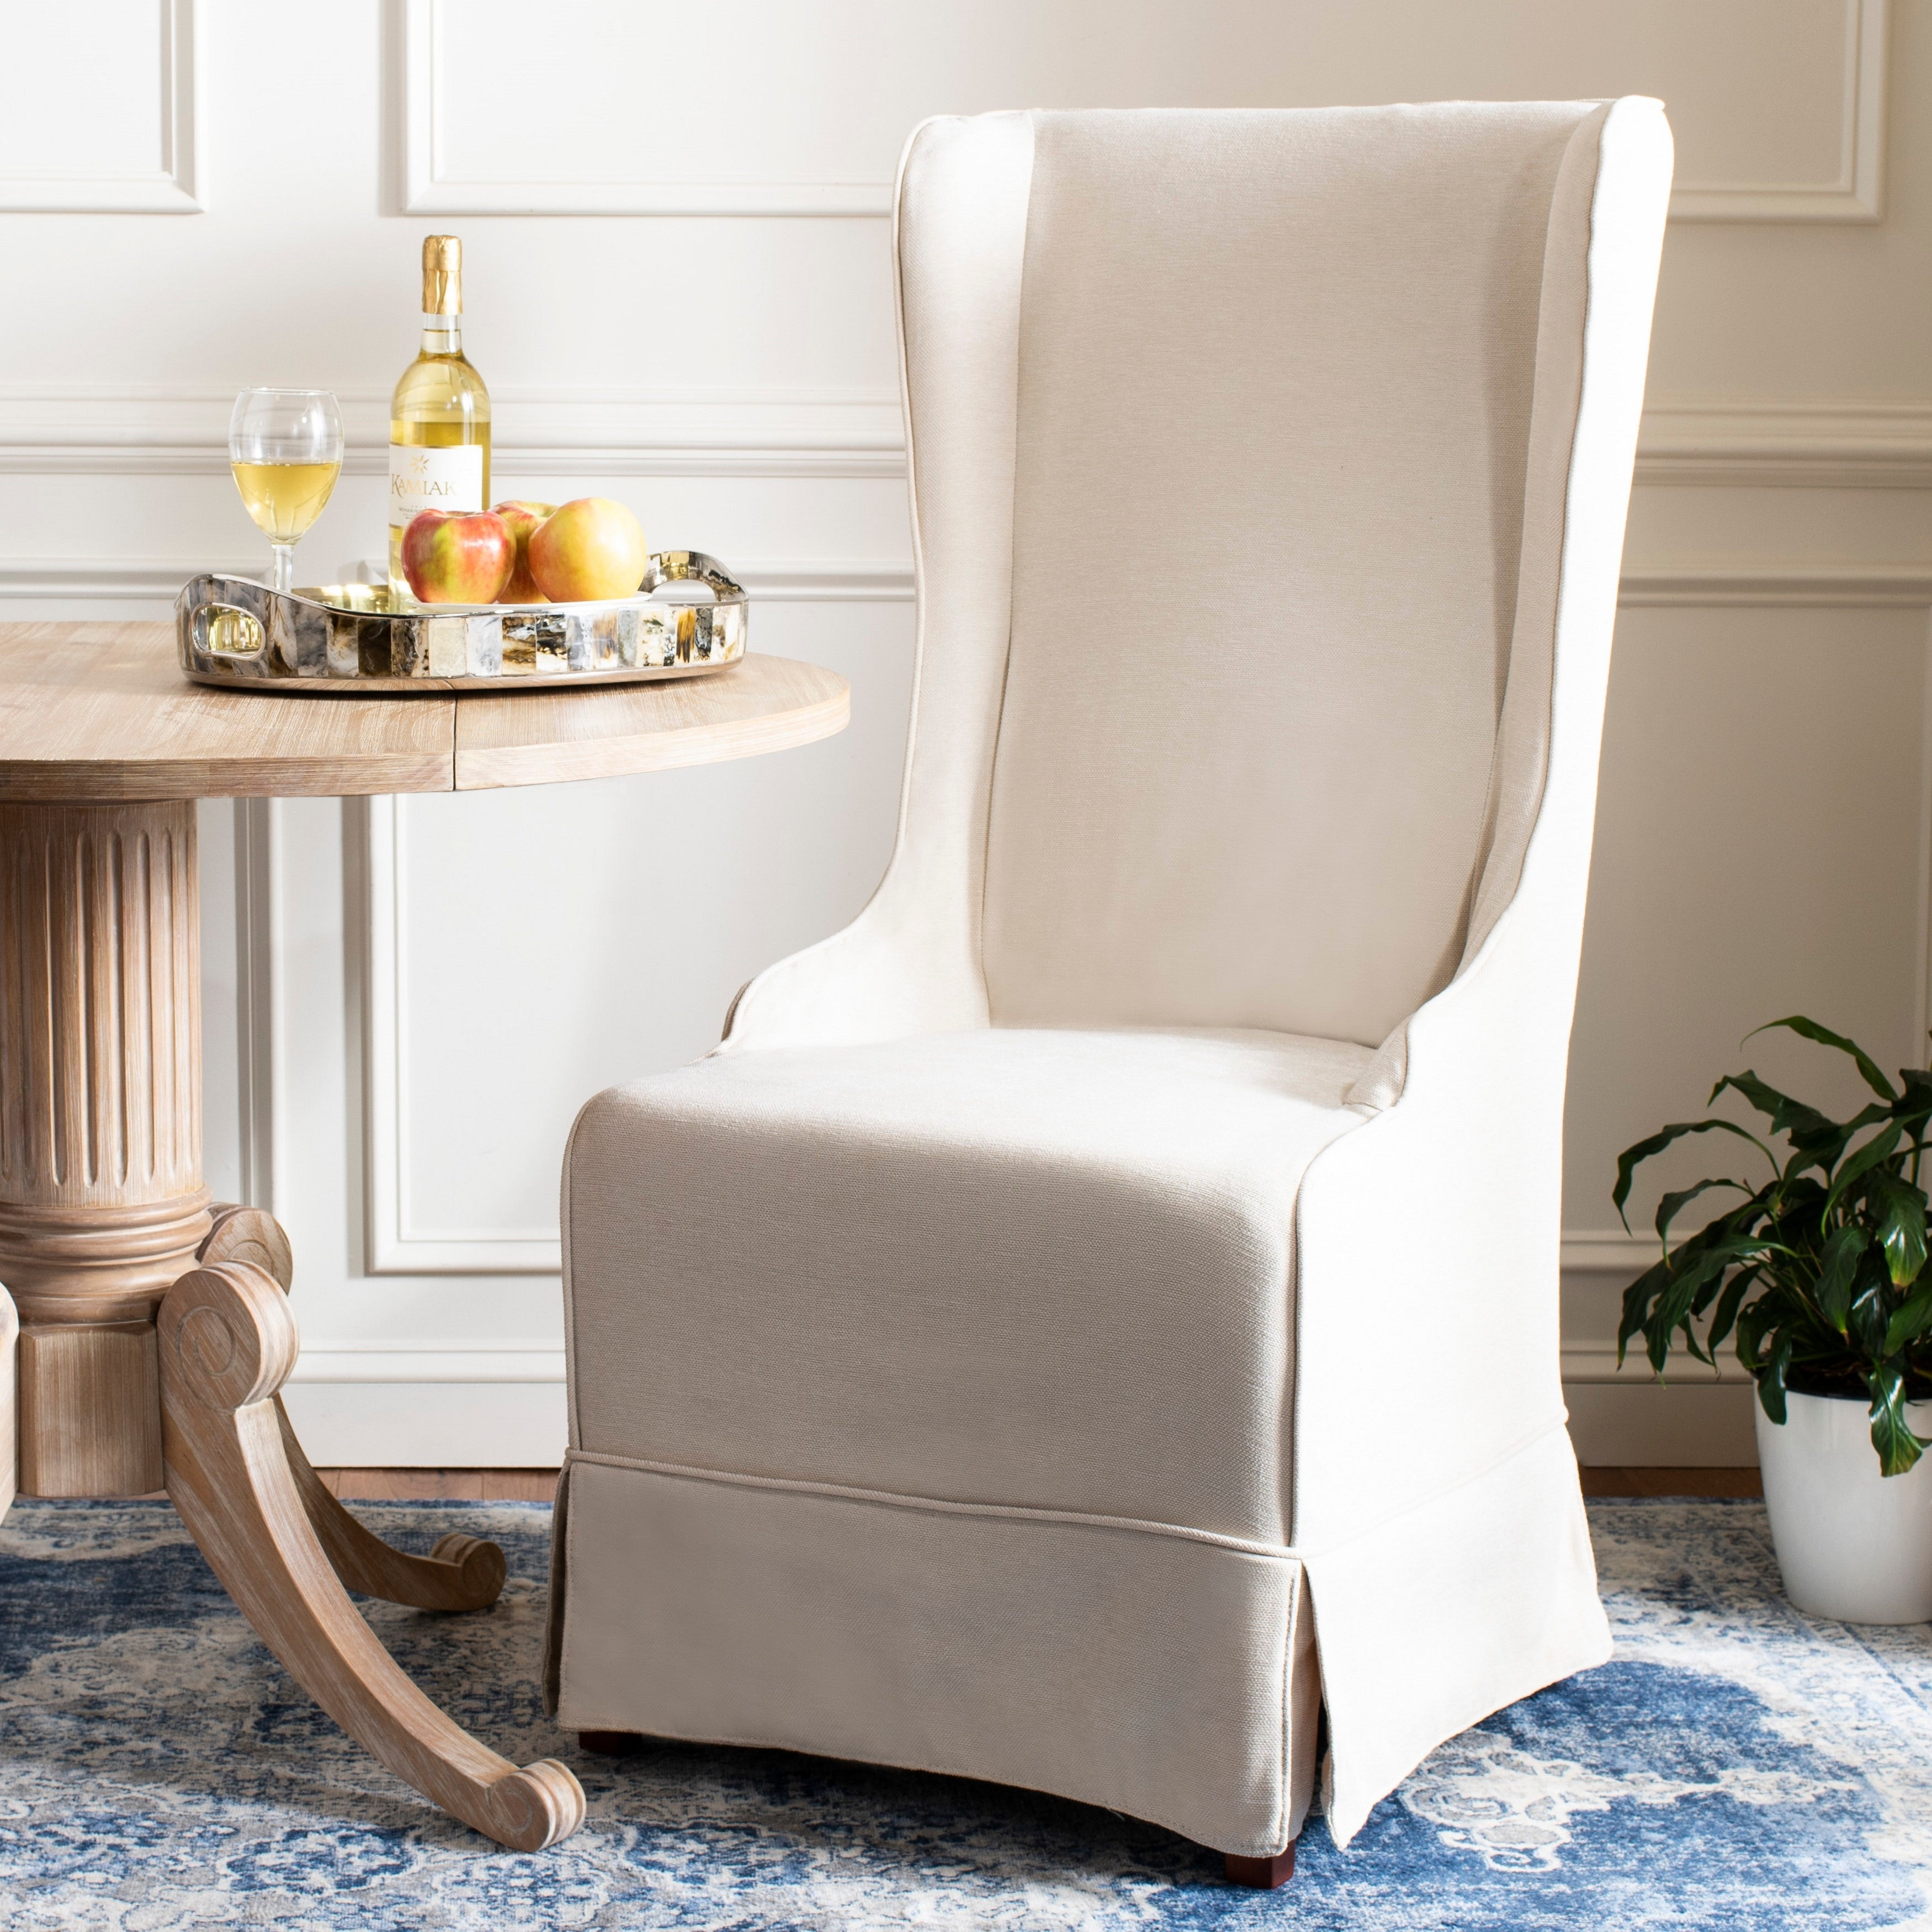 Style 51, Magnolia Brown SoulFeel Set of 4 Dining Chair Covers Stretch Spandex Dining Room Protector Slipcovers